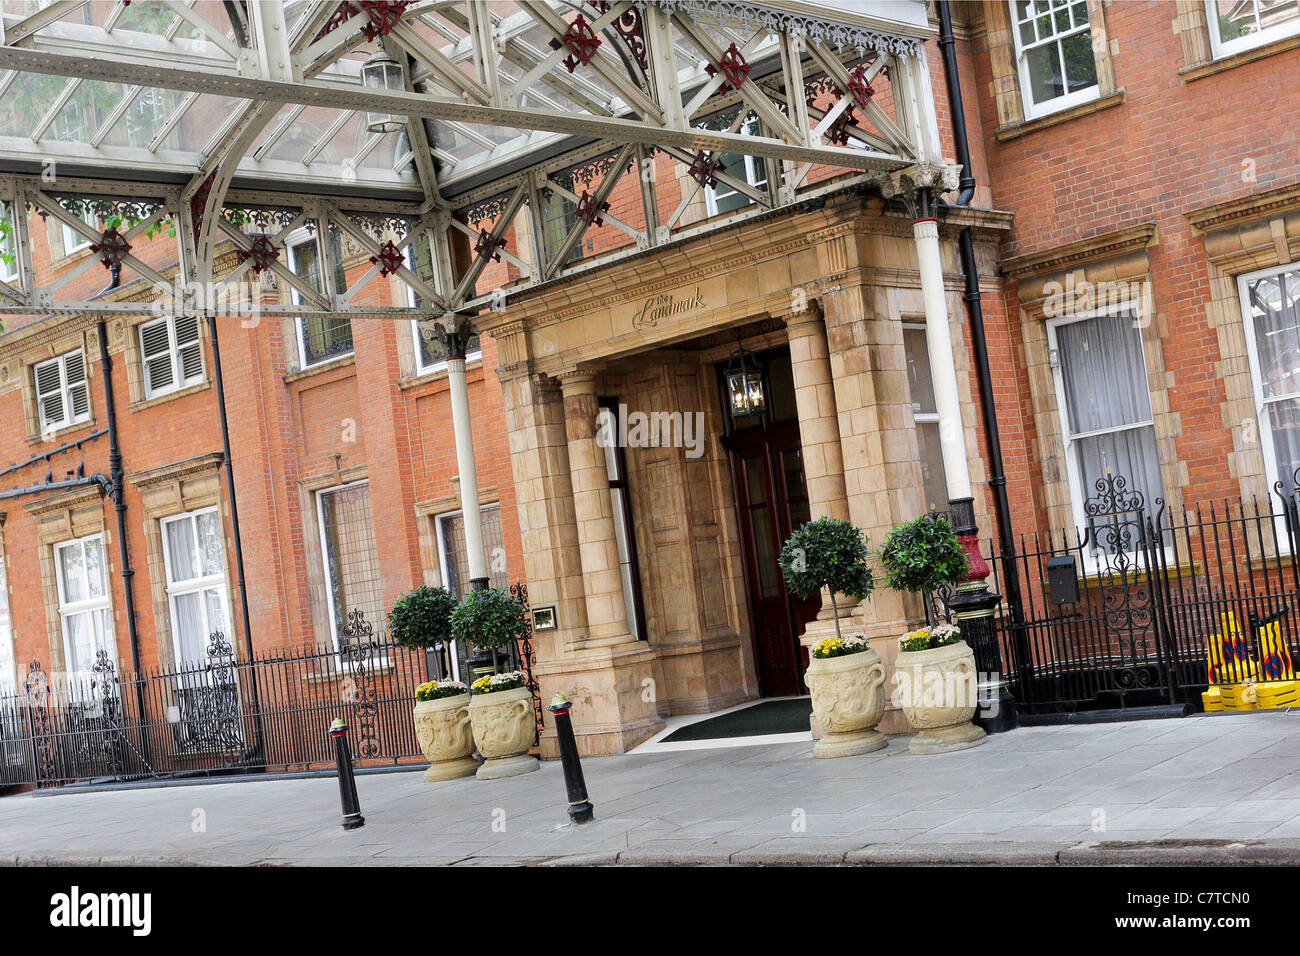 The rear and often used Melcombe Place entrance to the Landmark Hotel in Marylebone. Stock Photo